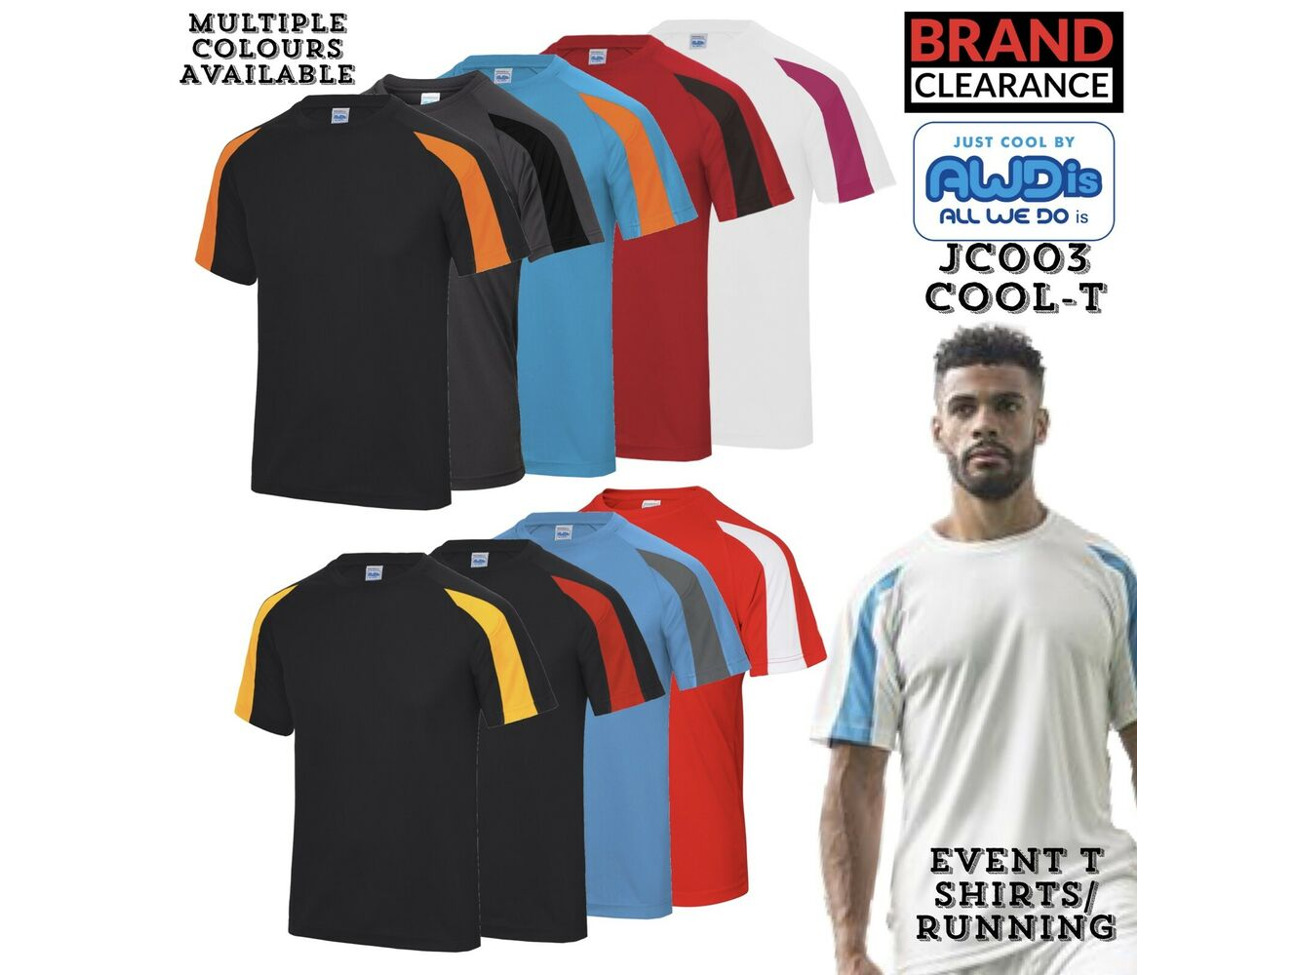 Buy Running T-Shirt Just Cool Event Gym Contrast 100% Polyester Cool